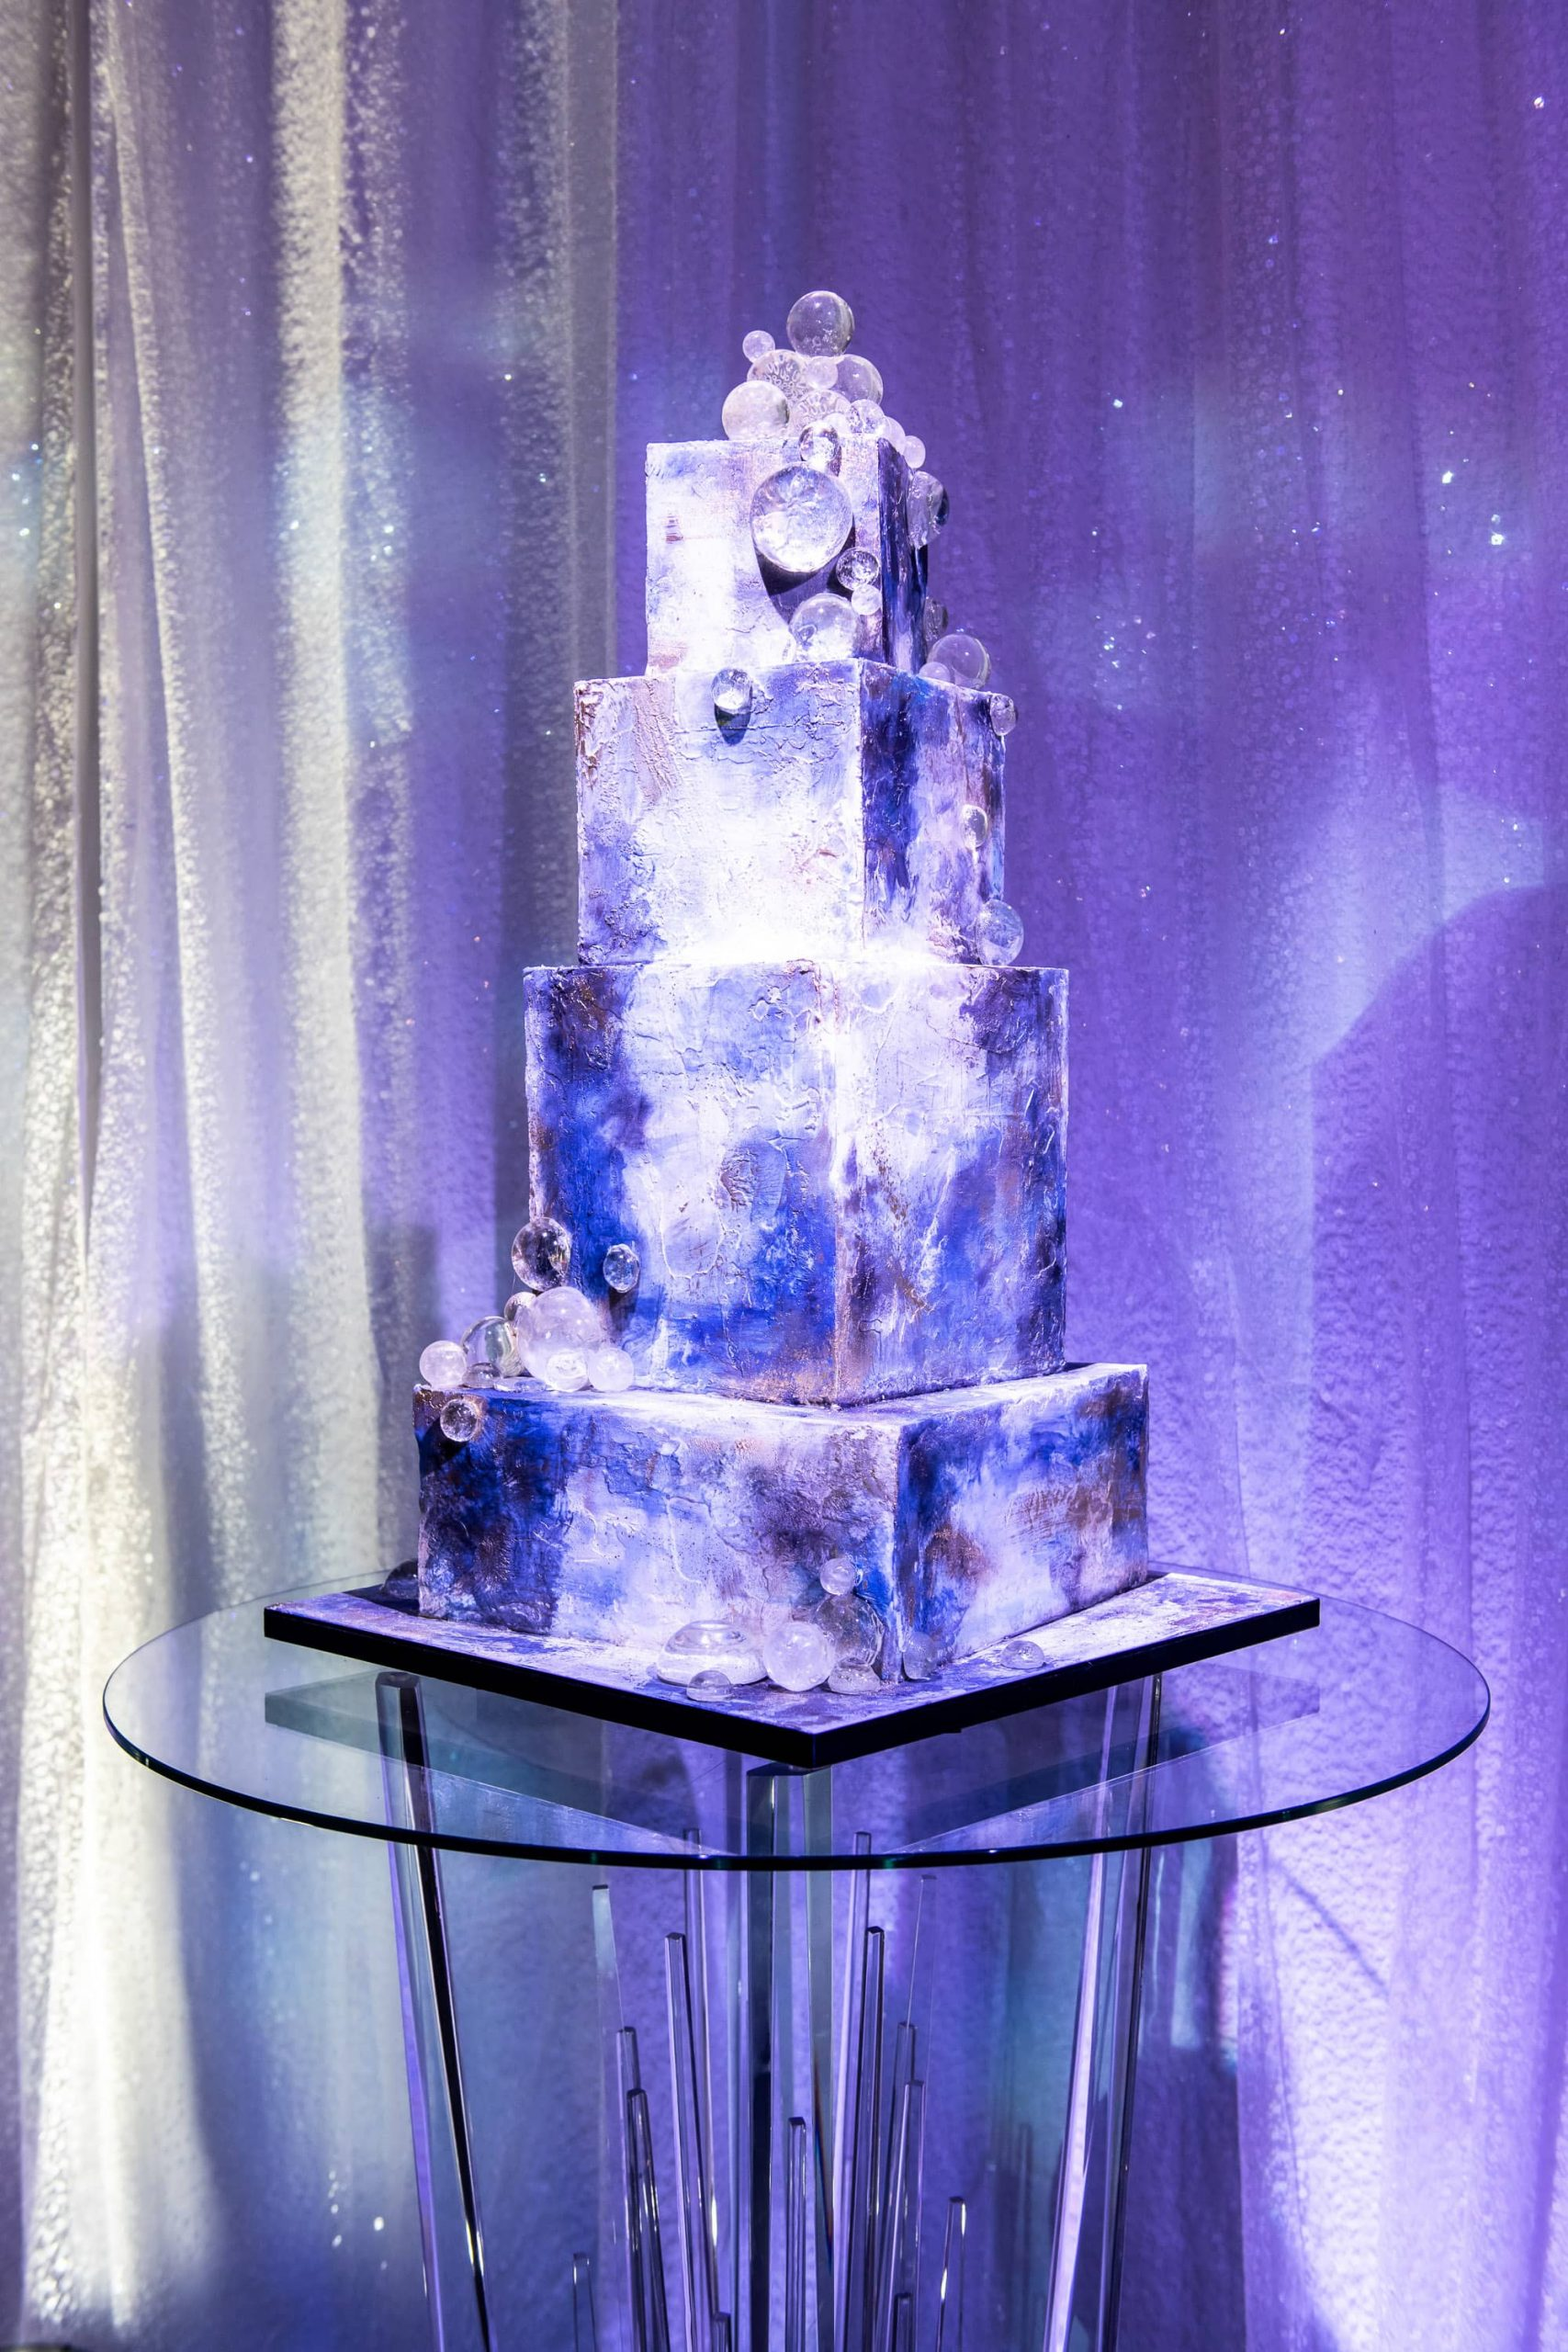 4-tier square wedding cake at champagne bottle-inspired reception at this NYE wedding in New York City | Photo by Gruber Photo